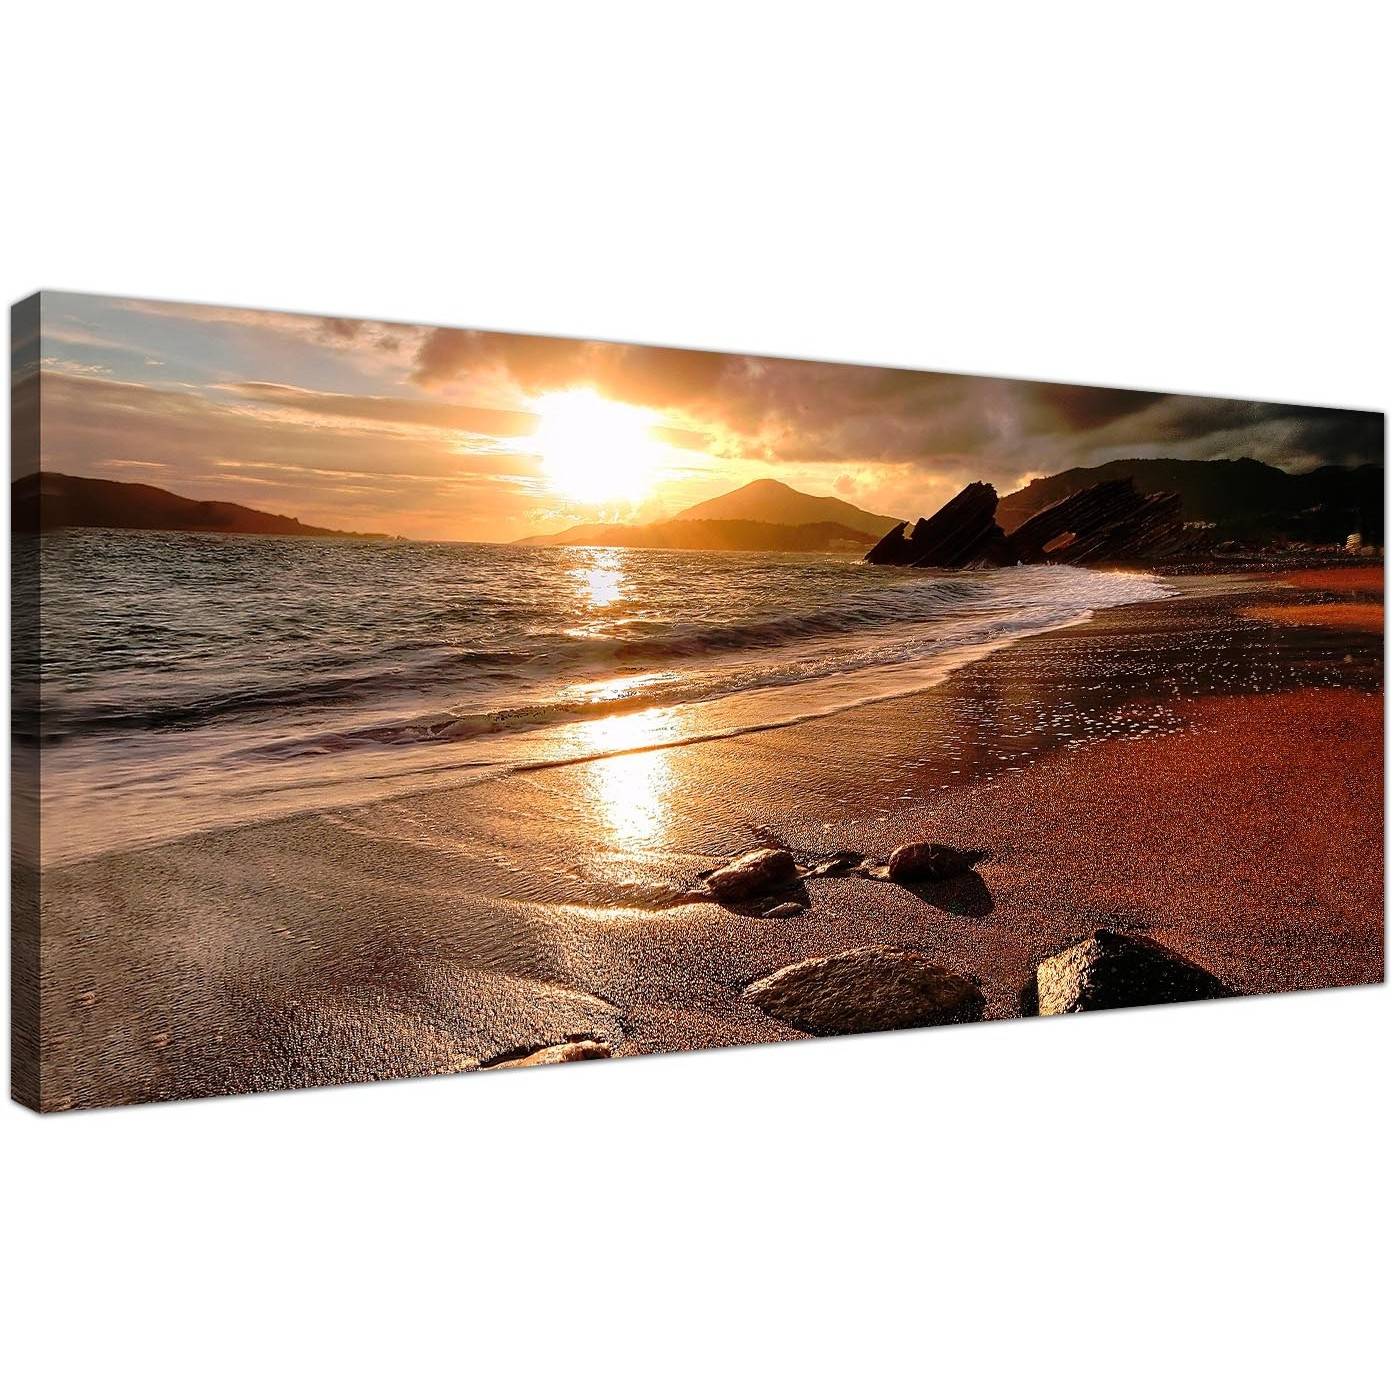 Wide Canvas Prints Of A Beach Sunset For Your Living Room Regarding Current Landscape Canvas Wall Art (View 7 of 15)